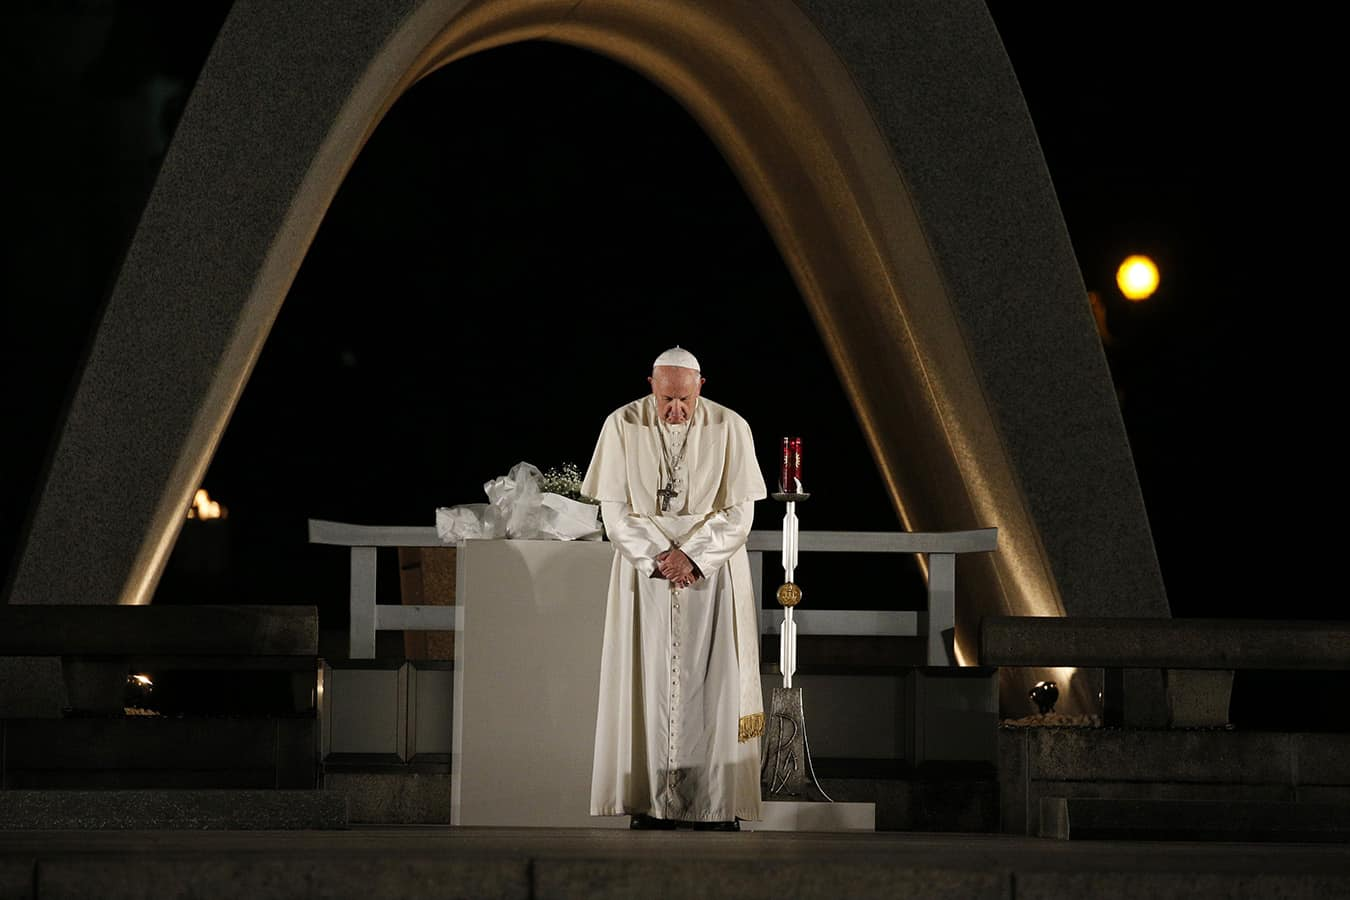 Weapons must be set aside for peace to flourish, pope says